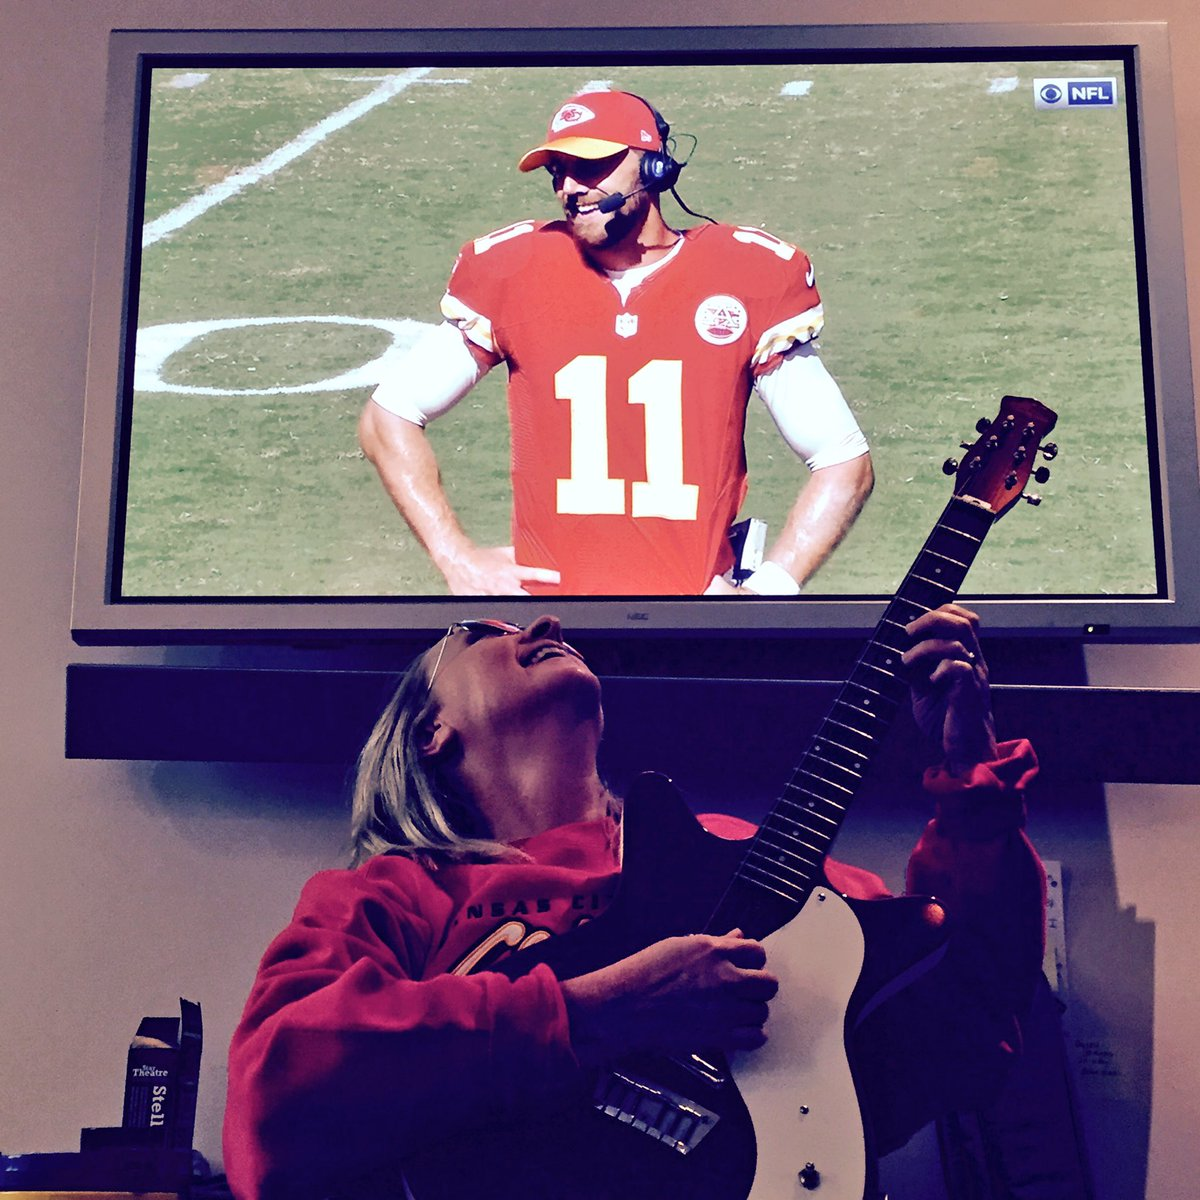 Might be the only man I want to write a love song to...#AlexSmith @Chiefs #ChiefsKingdom #Chiefs  #ArrowheadStadium https://t.co/lb9wsI9iXX